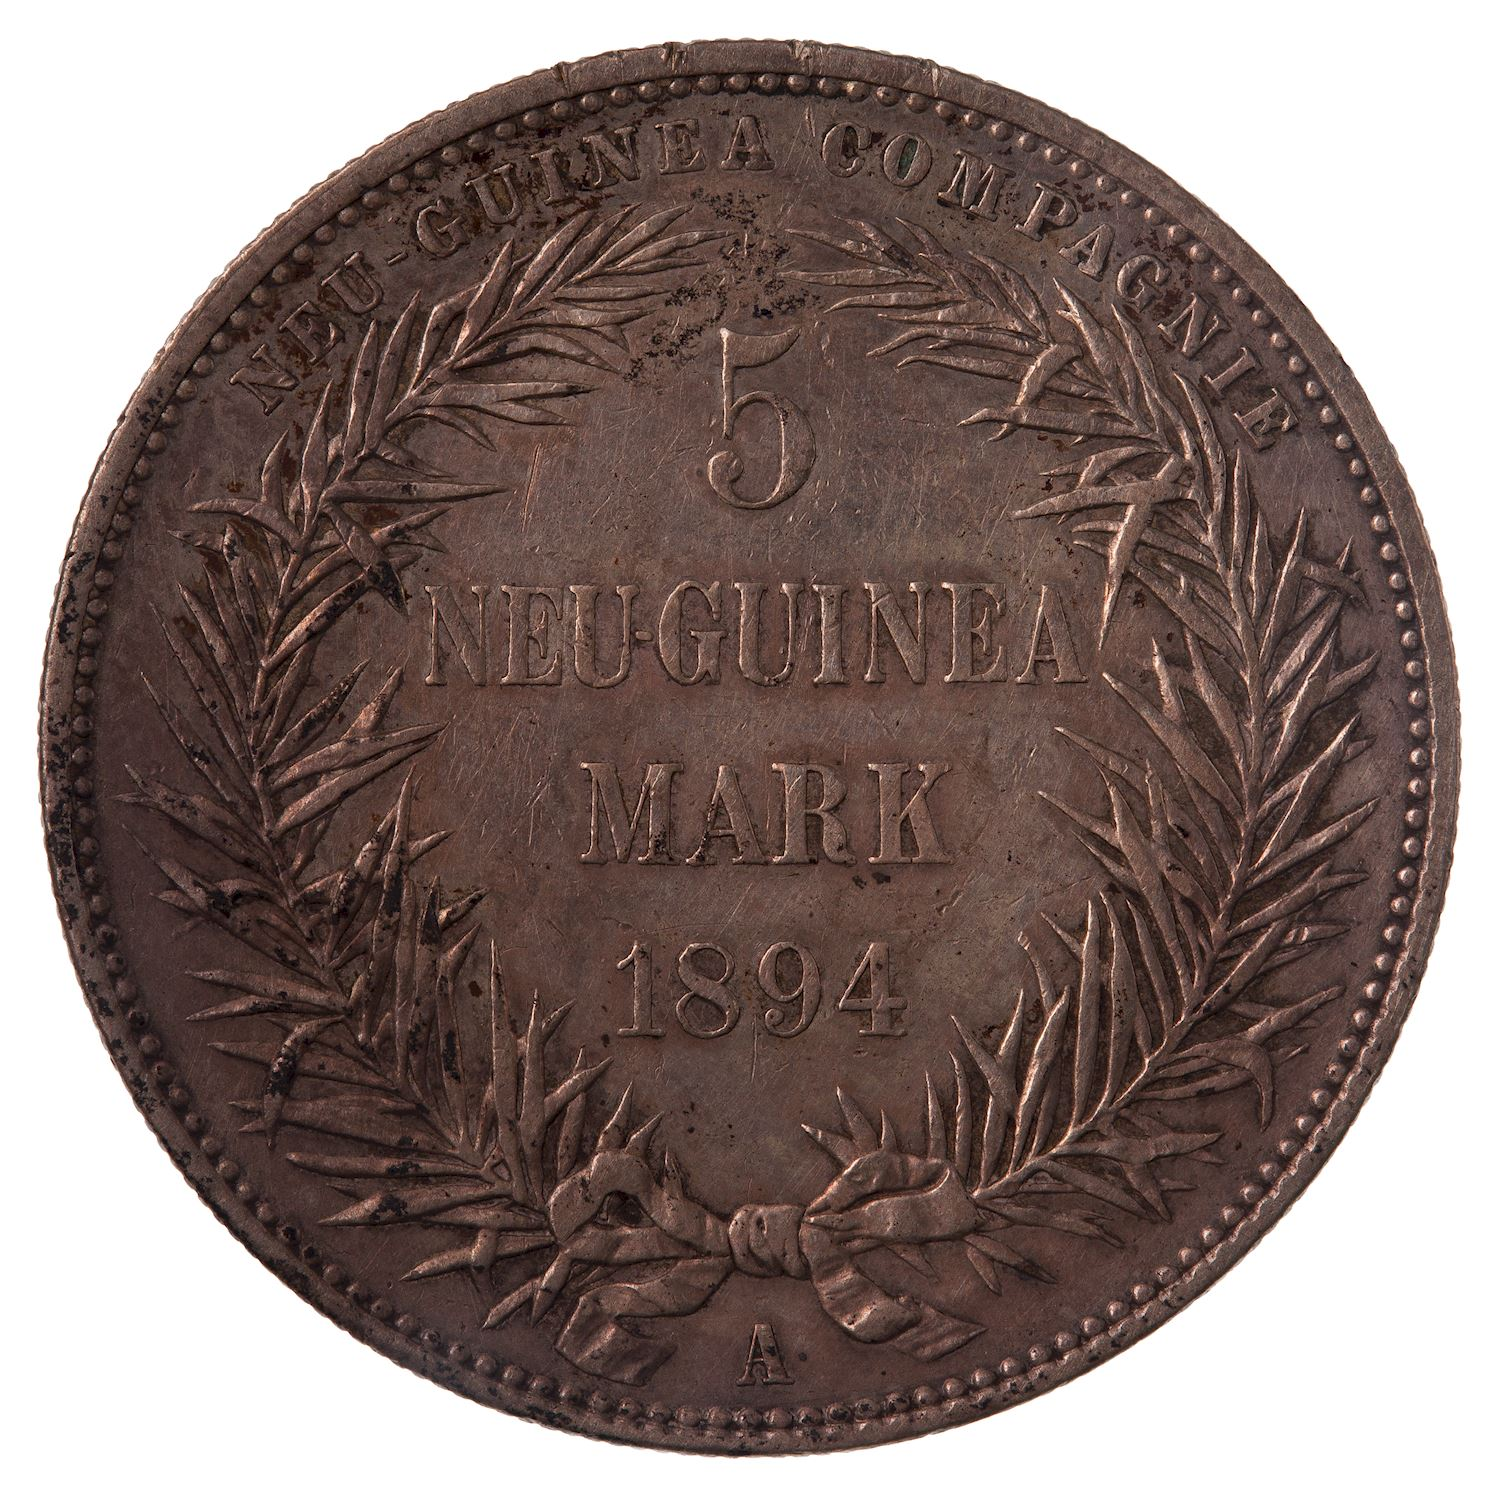 Five Marks 1894: Photo Coin - 5 Marks, German New Guinea (Papua New Guinea), 1894